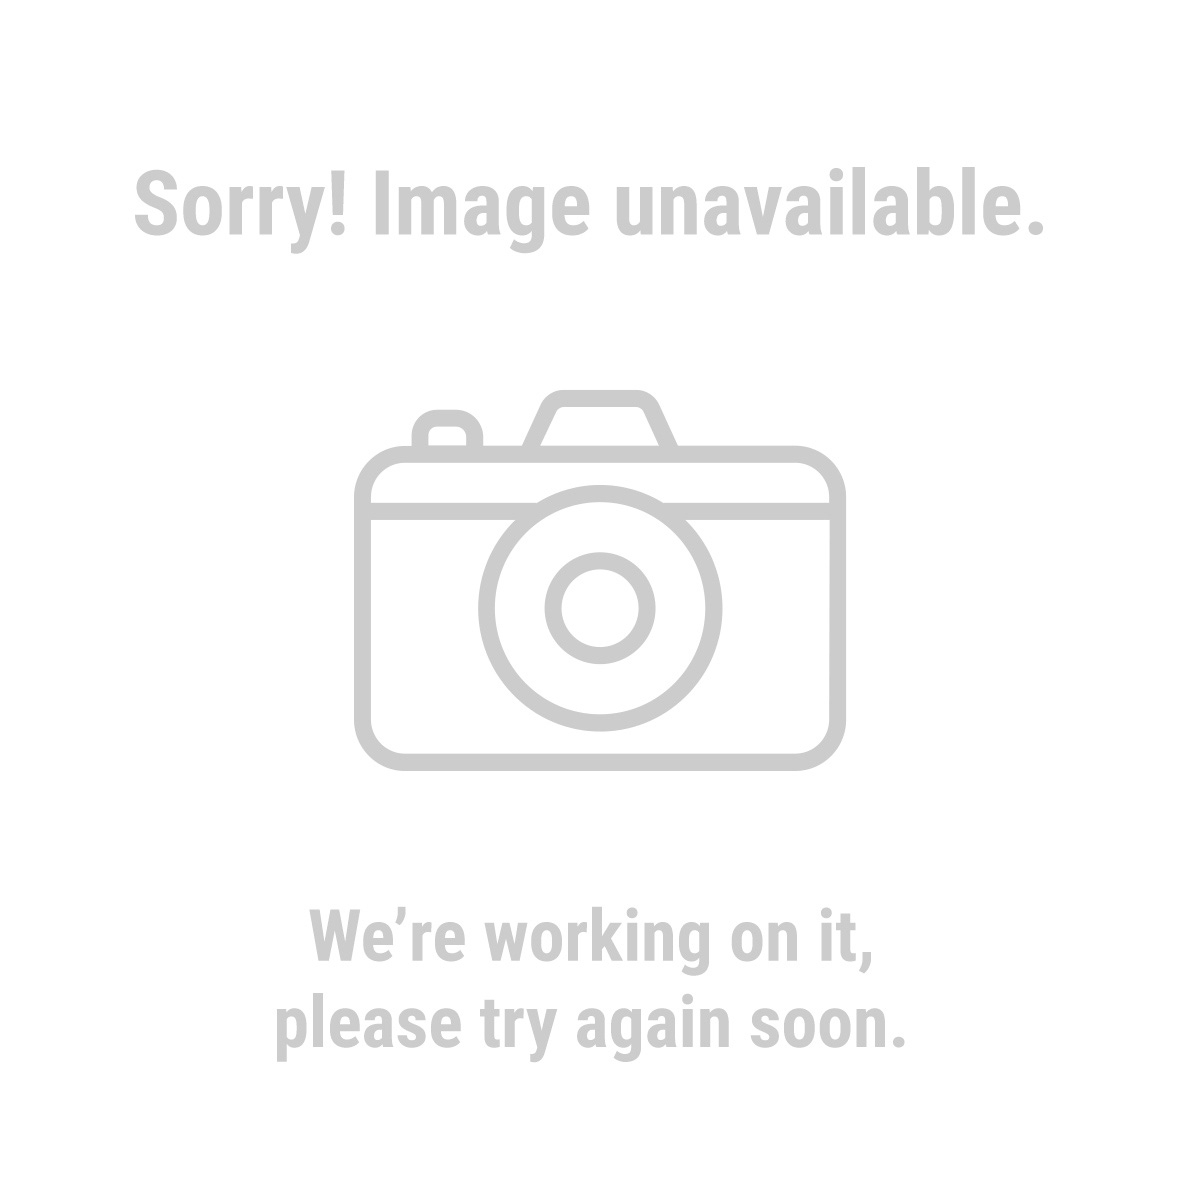 Warrior 69614 4-1/2 in. 80 Grit Resin Fiber Sanding Discs 5 Pc